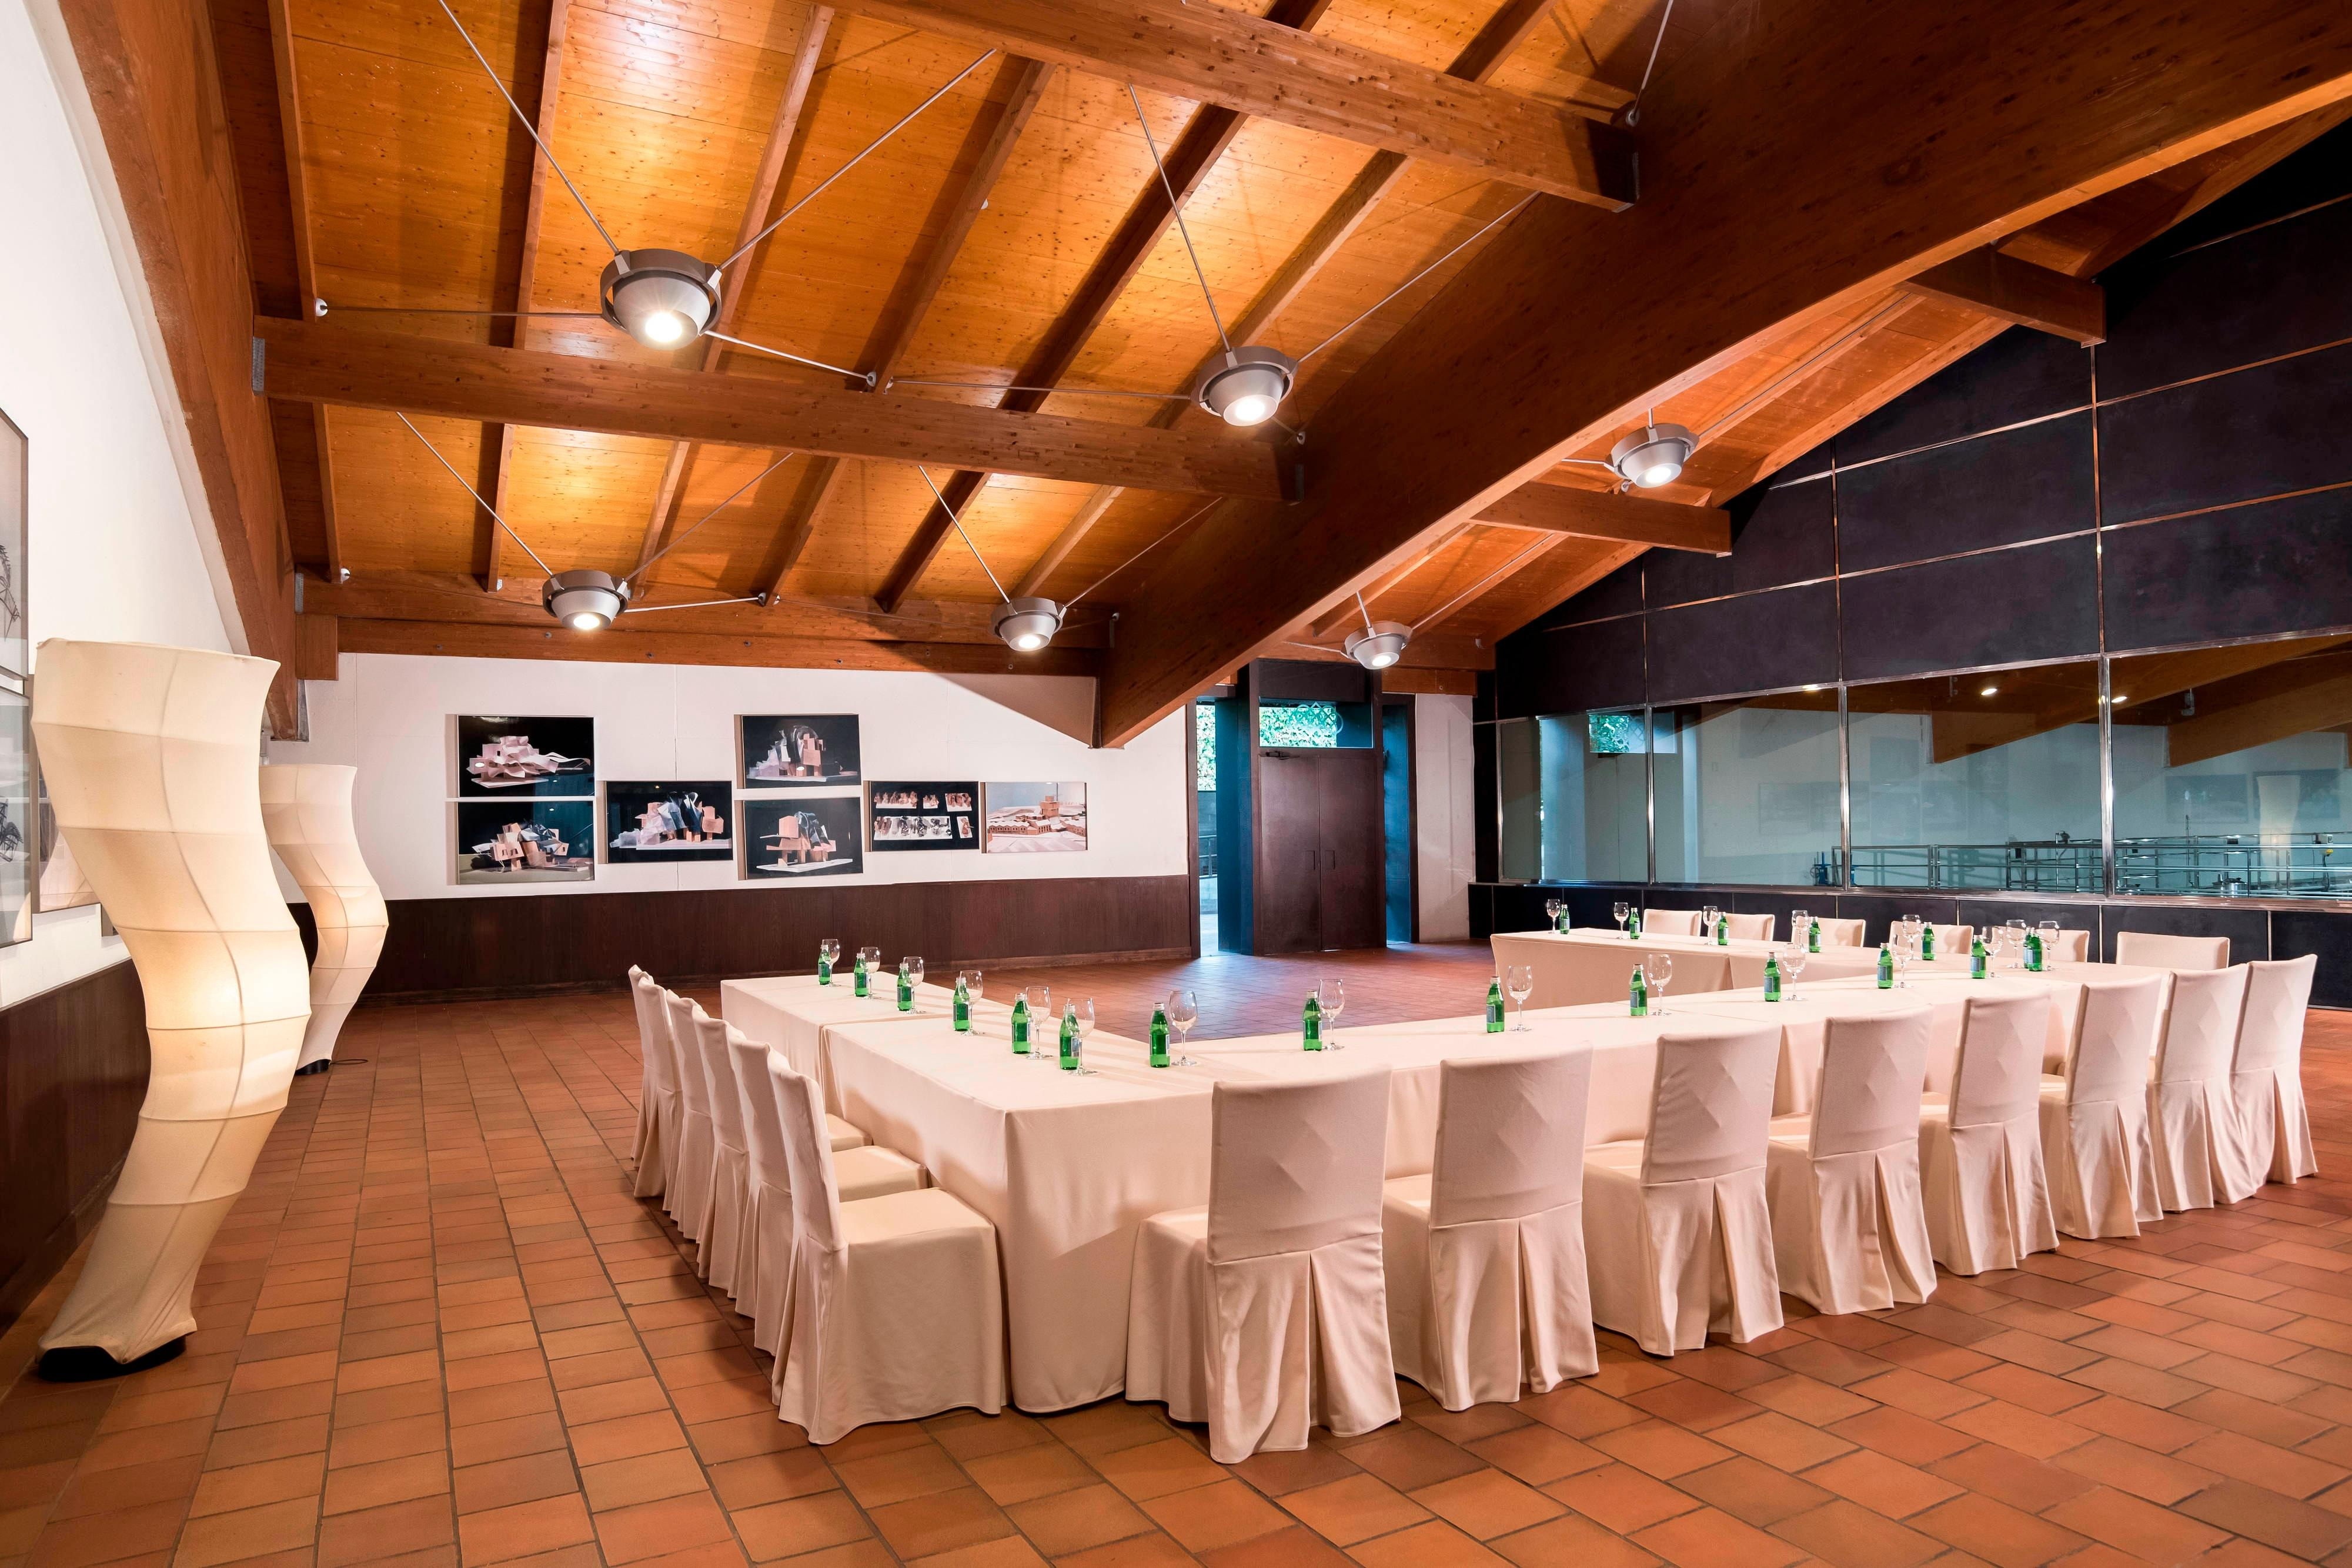 Torrea Meeting Room theater